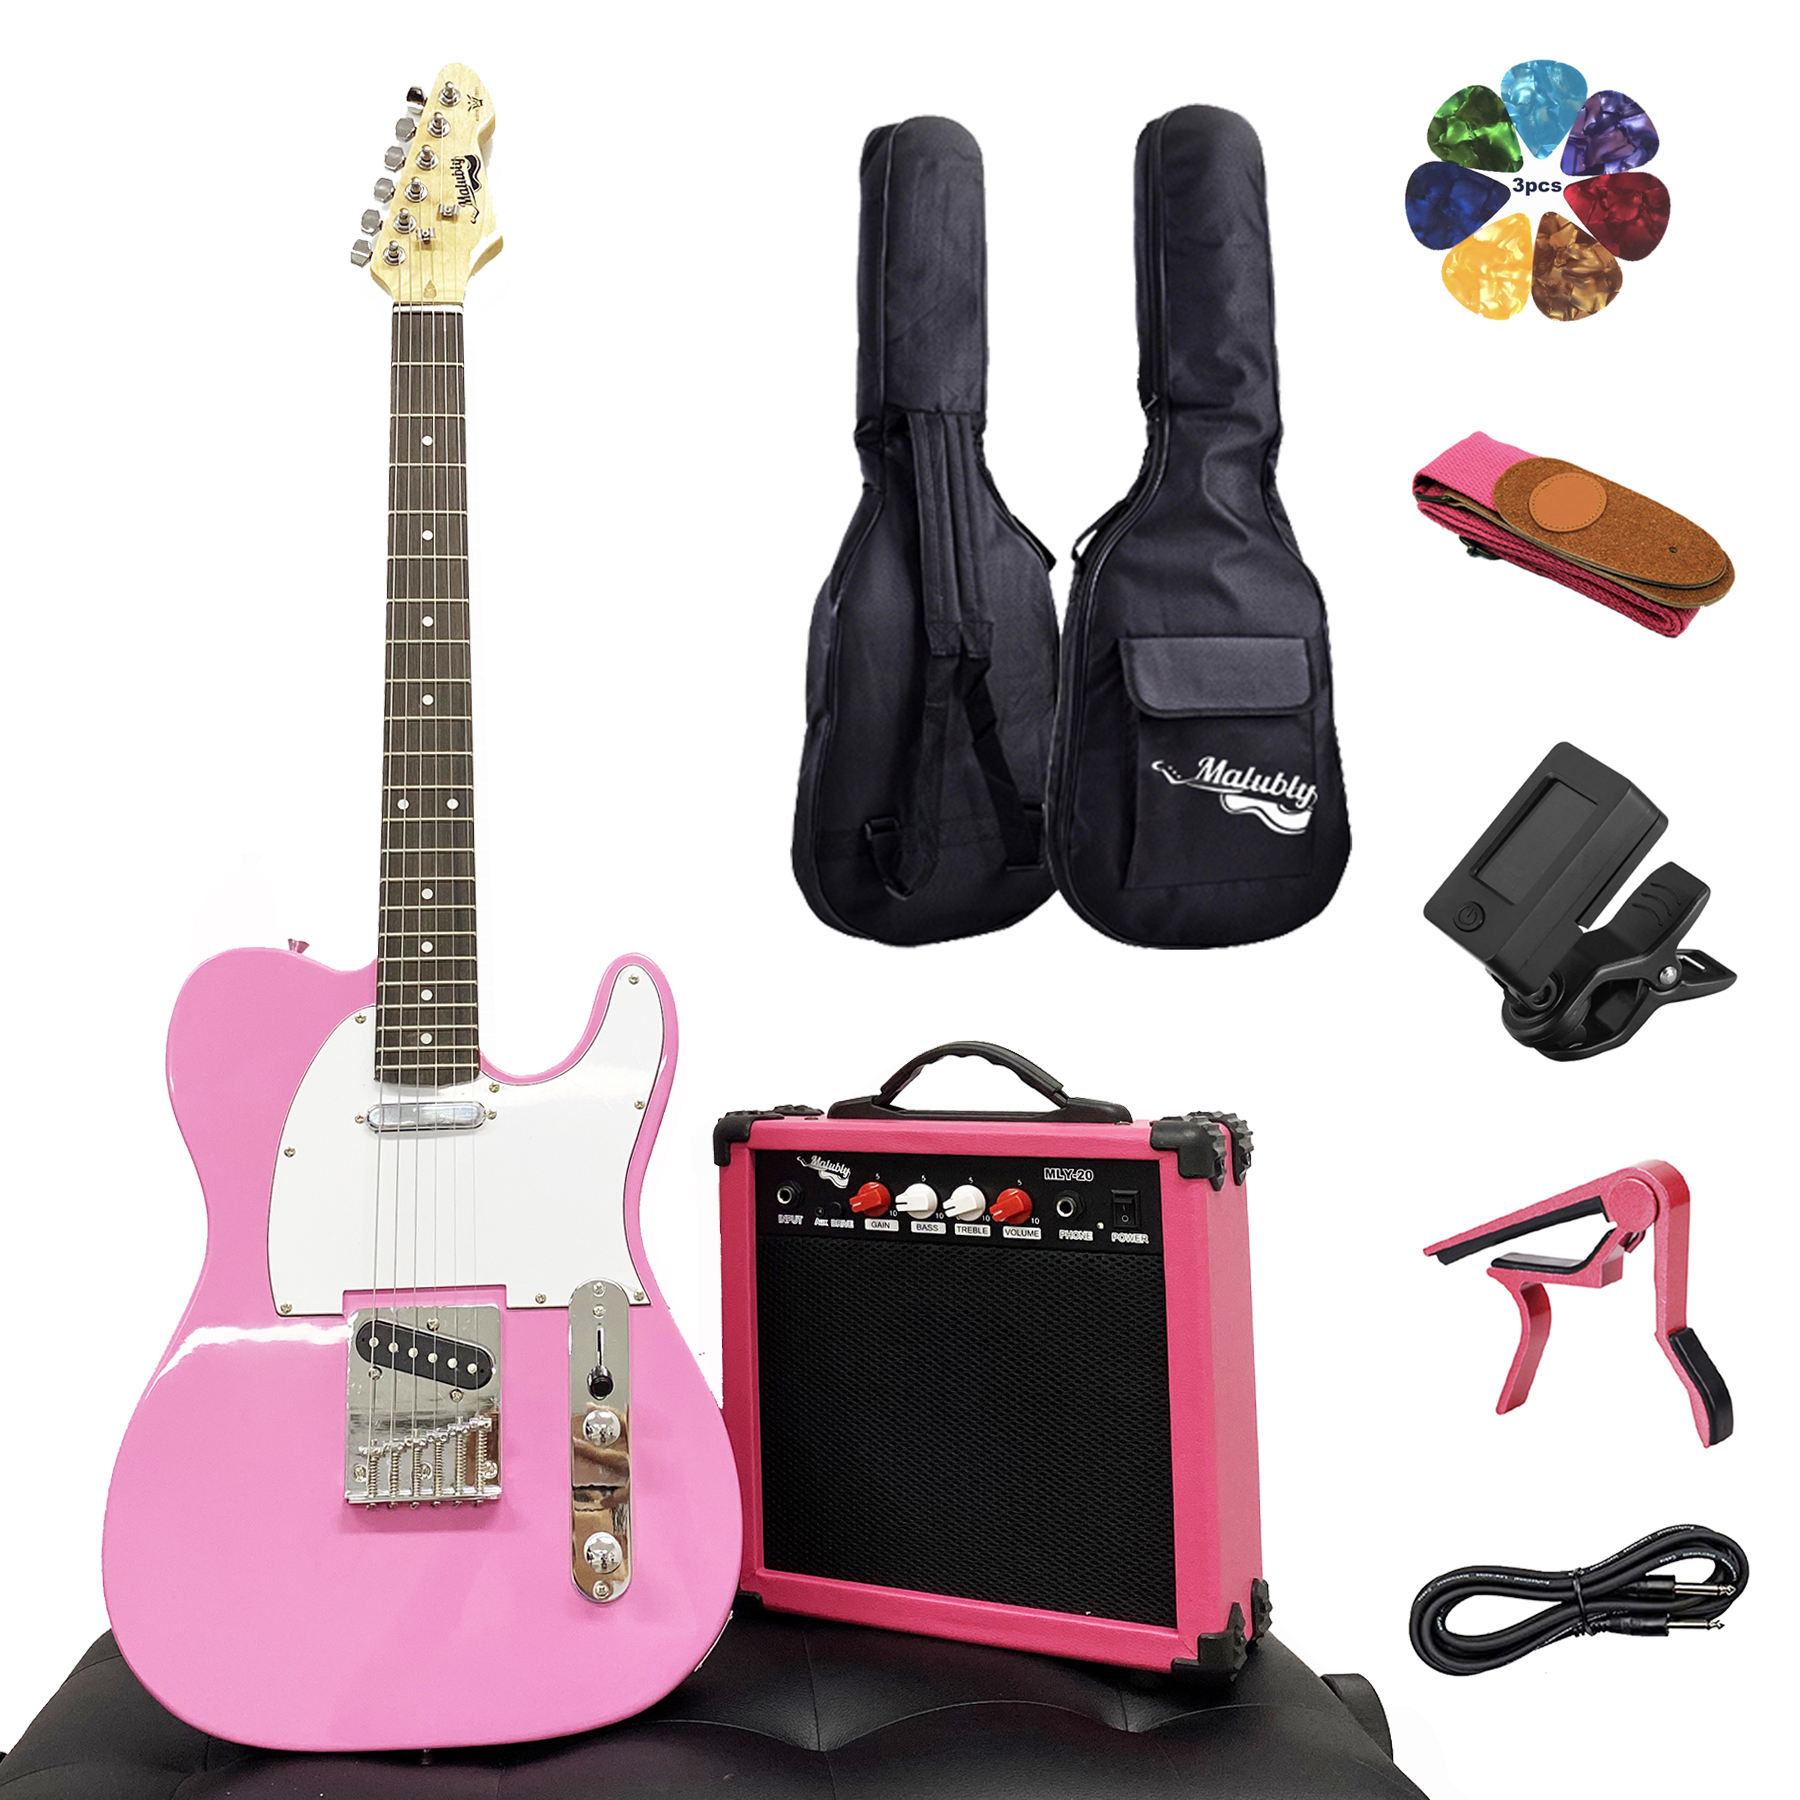 Hot Sale Pink Guitar Set TL Electric Guitar with 20 Watt Amplifier Tuner Capo Gig bag Strap Picks